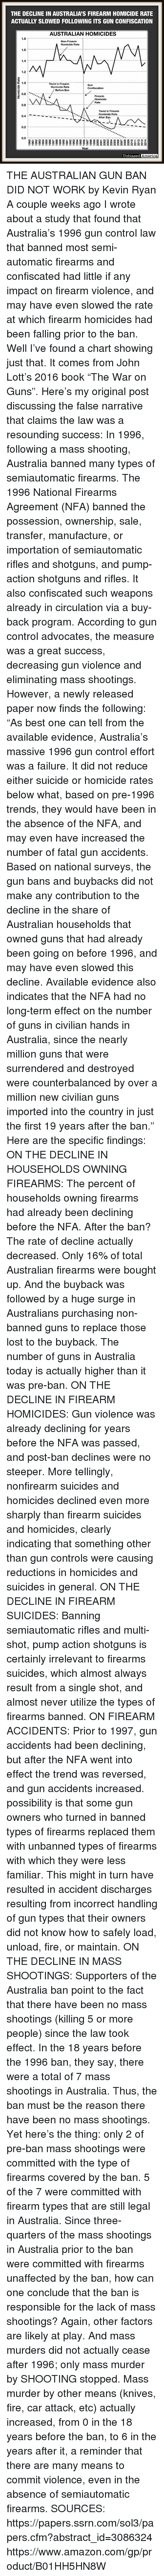 "Amazon, America, and Fire: THE DECLINE IN AUSTRALIA'S FIREARM HOMICIDE RATE  ACTUALLY SLOWED FOLLOWING ITS GUN CONFISCATION  AUSTRALIAN HOMICIDES  1.8  Non-Firearm:  Homicide Rate  1.6  1.4  1.2  1.0  Trend in Firearm  Homicide Rate  Before Ban  Gun  : Confiscation  E 0.8.  Firearm  Homicide  Rate  0.6  Trend in Firearm  Homicide Rate  After Ban  0.2  0.0  Year  Unbiased America THE AUSTRALIAN GUN BAN DID NOT WORK by Kevin Ryan  A couple weeks ago I wrote about a study that found that Australia's 1996 gun control law that banned most semi-automatic firearms and confiscated had little if any impact on firearm violence, and may have even slowed the rate at which firearm homicides had been falling prior to the ban.  Well I've found a chart showing just that.  It comes from John Lott's 2016 book ""The War on Guns"".  Here's my original post discussing the false narrative that claims the law was a resounding success:  In 1996, following a mass shooting, Australia banned many types of semiautomatic firearms.  The 1996 National Firearms Agreement (NFA) banned the possession, ownership, sale, transfer, manufacture, or importation of semiautomatic rifles and shotguns, and pump-action shotguns and rifles.  It also confiscated such weapons already in circulation via a buy-back program.  According to gun control advocates, the measure was a great success, decreasing gun violence and eliminating mass shootings.  However, a newly released paper now finds the following:  ""As best one can tell from the available evidence, Australia's massive 1996 gun control effort was a failure. It did not reduce either suicide or homicide rates below what, based on pre-1996 trends, they would have been in the absence of the NFA, and may even have increased the number of fatal gun accidents. Based on national surveys, the gun bans and buybacks did not make any contribution to the decline in the share of Australian households that owned guns that had already been going on before 1996, and may have even slowed this decline. Available evidence also indicates that the NFA had no long-term effect on the number of guns in civilian hands in Australia, since the nearly million guns that were surrendered and destroyed were counterbalanced by over a million new civilian guns imported into the country in just the first 19 years after the ban.""  Here are the specific findings:  ON THE DECLINE IN HOUSEHOLDS OWNING FIREARMS:  The percent of households owning firearms had already been declining before the NFA.  After the ban?  The rate of decline actually decreased.  Only 16% of total Australian firearms were bought up.  And the buyback was followed by a huge surge in Australians purchasing non-banned guns to replace those lost to the buyback.  The number of guns in Australia today is actually higher than it was pre-ban.  ON THE DECLINE IN FIREARM HOMICIDES: Gun violence was already declining for years before the NFA was passed, and post-ban declines were no steeper.  More tellingly, nonfirearm suicides and homicides declined even more sharply than firearm suicides and homicides, clearly indicating that something other than gun controls were causing reductions in homicides and suicides in general.  ON THE DECLINE IN FIREARM SUICIDES: Banning semiautomatic rifles and multi-shot, pump action shotguns is certainly irrelevant to firearms suicides, which almost always result from a single shot, and almost never utilize the types of firearms banned.  ON FIREARM ACCIDENTS: Prior to 1997, gun accidents had been declining, but after the NFA went into effect the trend was reversed, and gun accidents increased.  possibility is that some gun owners who turned in banned types of firearms replaced them with unbanned types of firearms with which they were less familiar. This might in turn have resulted in accident discharges resulting from incorrect handling of gun types that their owners did not know how to safely load, unload, fire, or maintain.  ON THE DECLINE IN MASS SHOOTINGS: Supporters of the Australia ban point to the fact that there have been no mass shootings (killing 5 or more people) since the law took effect.  In the 18 years before the 1996 ban, they say, there were a total of 7 mass shootings in Australia.  Thus, the ban must be the reason there have been no mass shootings.  Yet here's the thing: only 2 of pre-ban mass shootings were committed with the type of firearms covered by the ban.  5 of the 7 were committed with firearm types that are still legal in Australia.  Since three-quarters of the mass shootings in Australia prior to the ban were committed with firearms unaffected by the ban, how can one conclude that the ban is responsible for the lack of mass shootings?  Again, other factors are likely at play.  And mass murders did not actually cease after 1996; only mass murder by SHOOTING stopped. Mass murder by other means (knives, fire, car attack, etc) actually increased, from 0 in the 18 years before the ban, to 6 in the years after it, a reminder that there are many means to commit violence, even in the absence of semiautomatic firearms.  SOURCES: https://papers.ssrn.com/sol3/papers.cfm?abstract_id=3086324 https://www.amazon.com/gp/product/B01HH5HN8W"